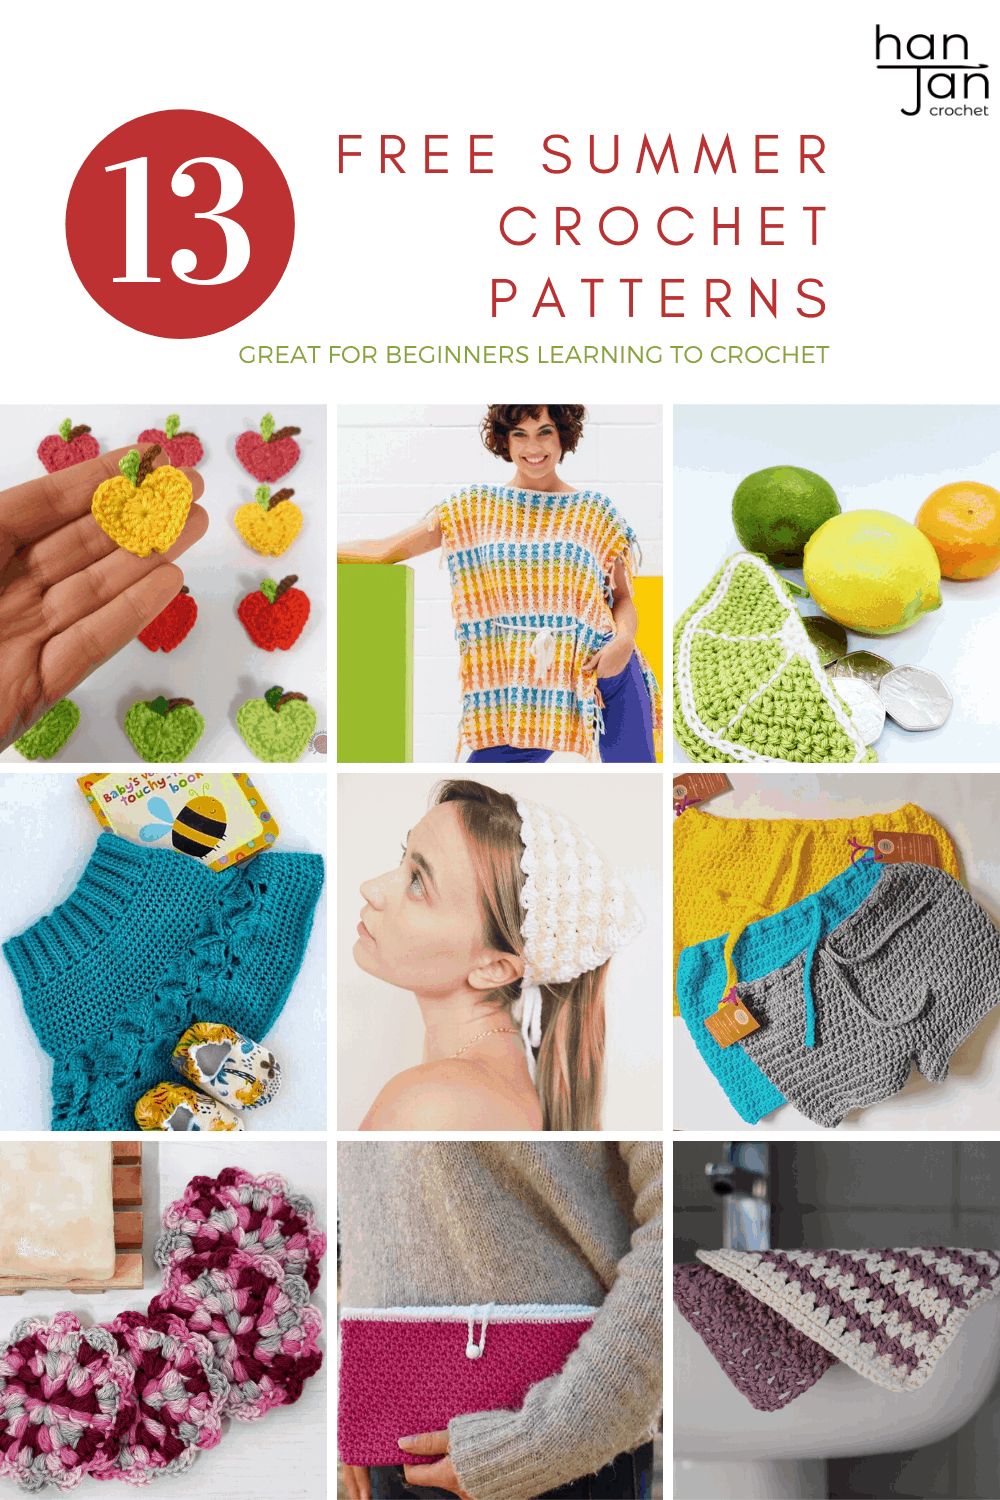 This collection of 12 free summer crochet patterns shows us that crochet isn't just a winter sport! Join the Summer Stitch Along and get free bag, top, and home crochet patterns.